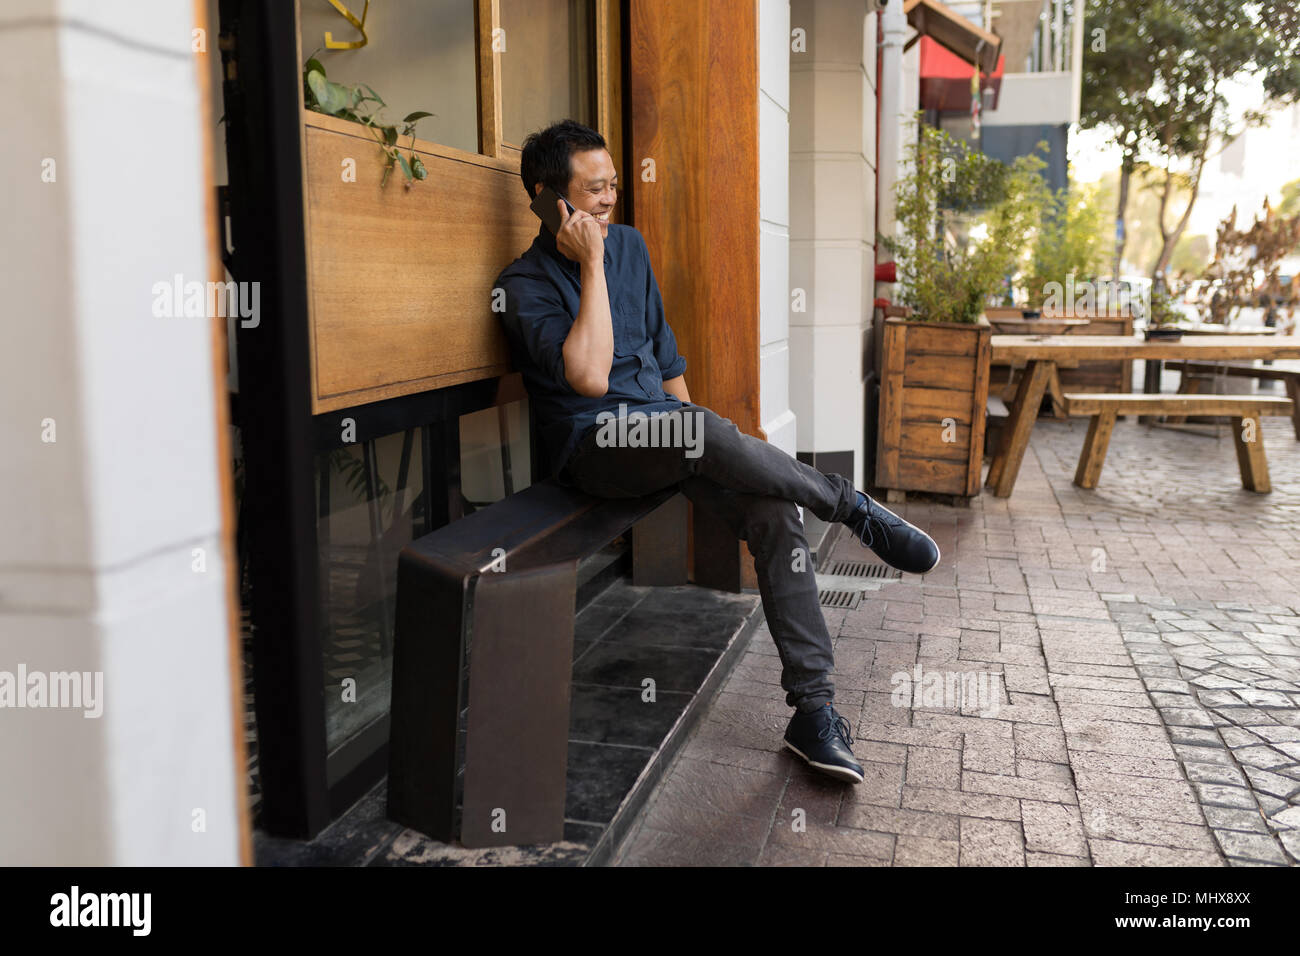 Businessman talking on phone in the pavement cafe - Stock Image